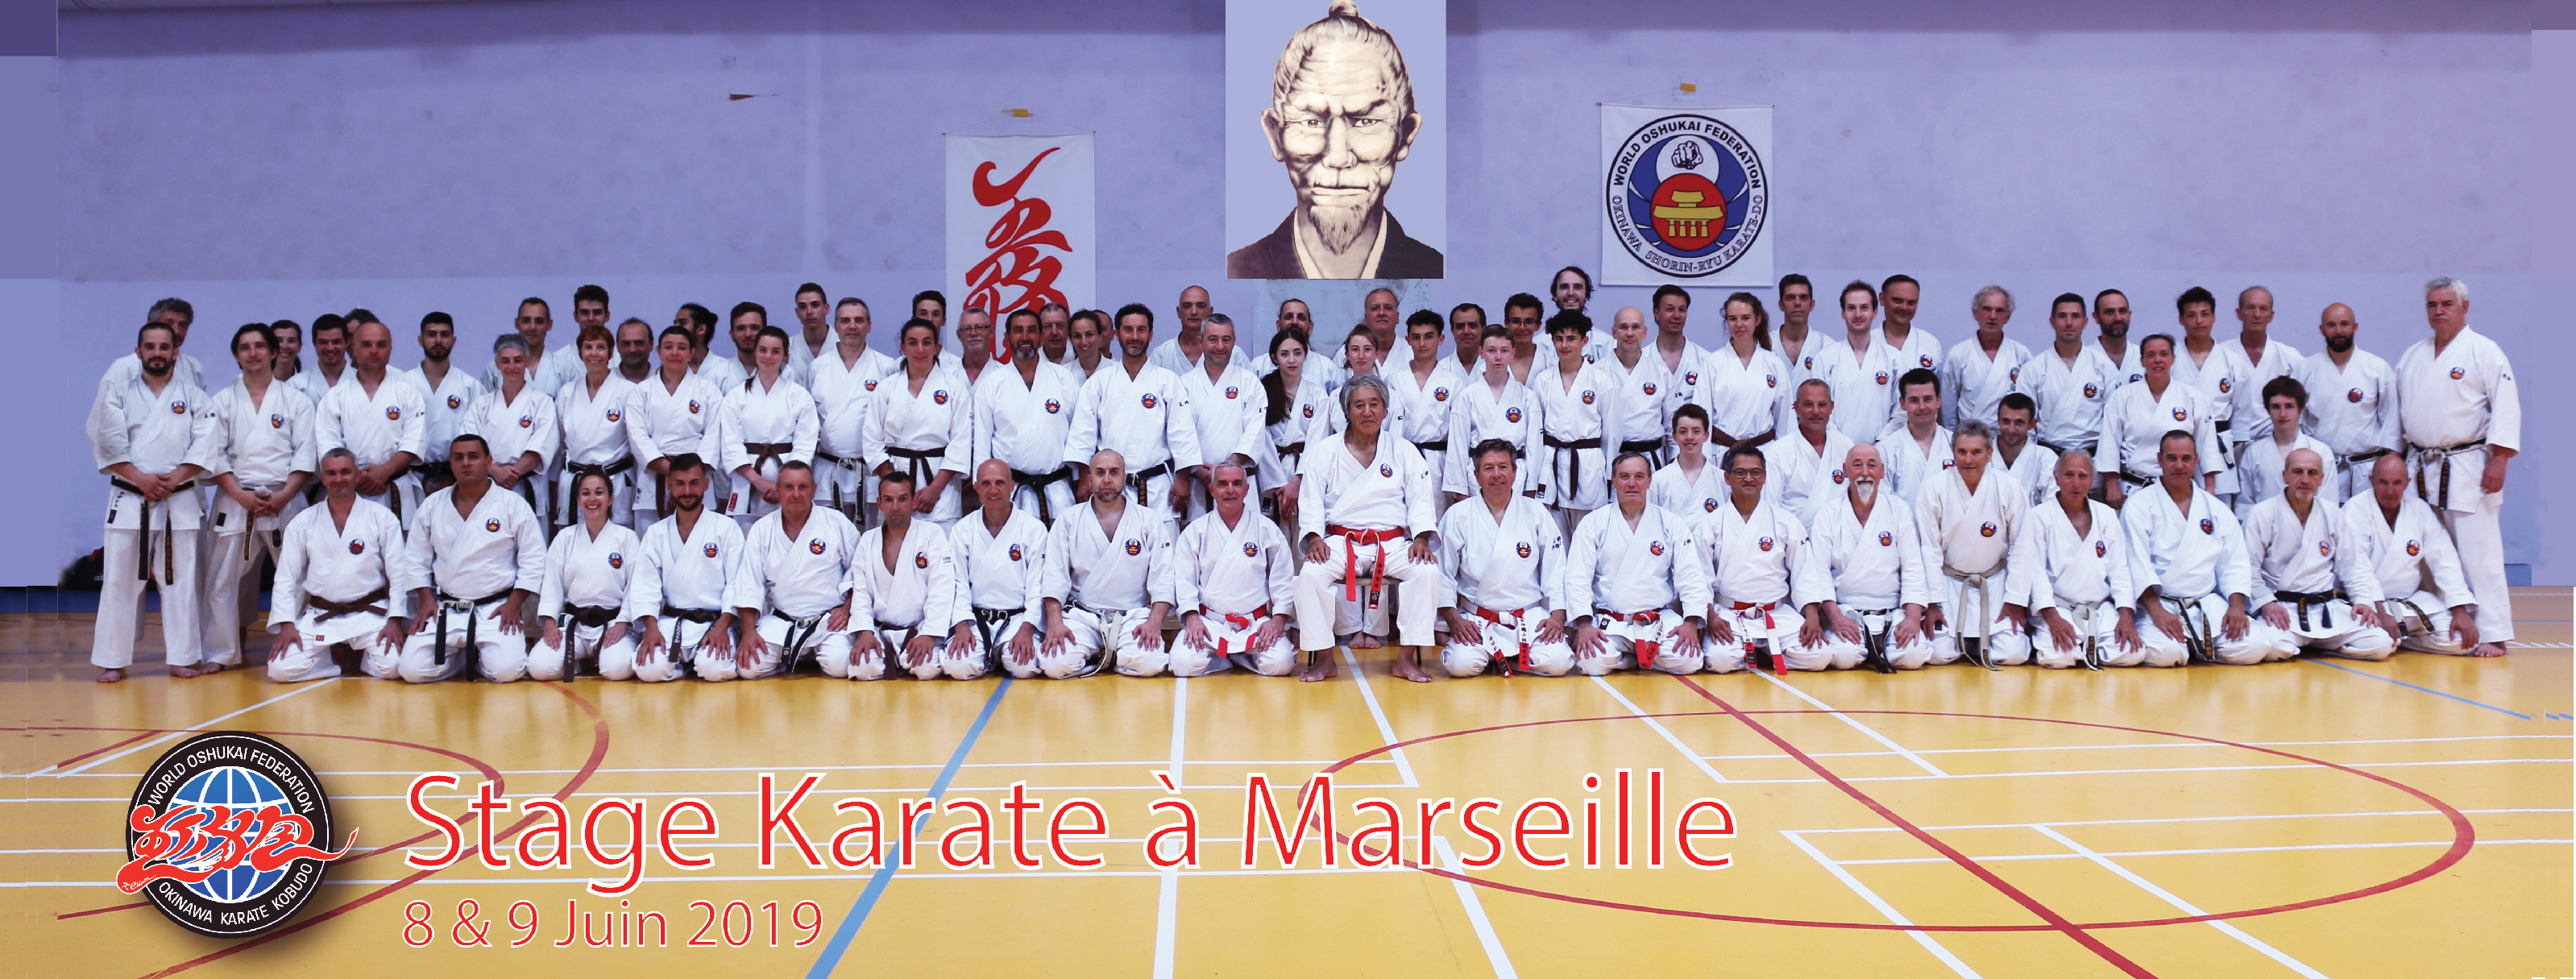 Stage National Oshukai Karate